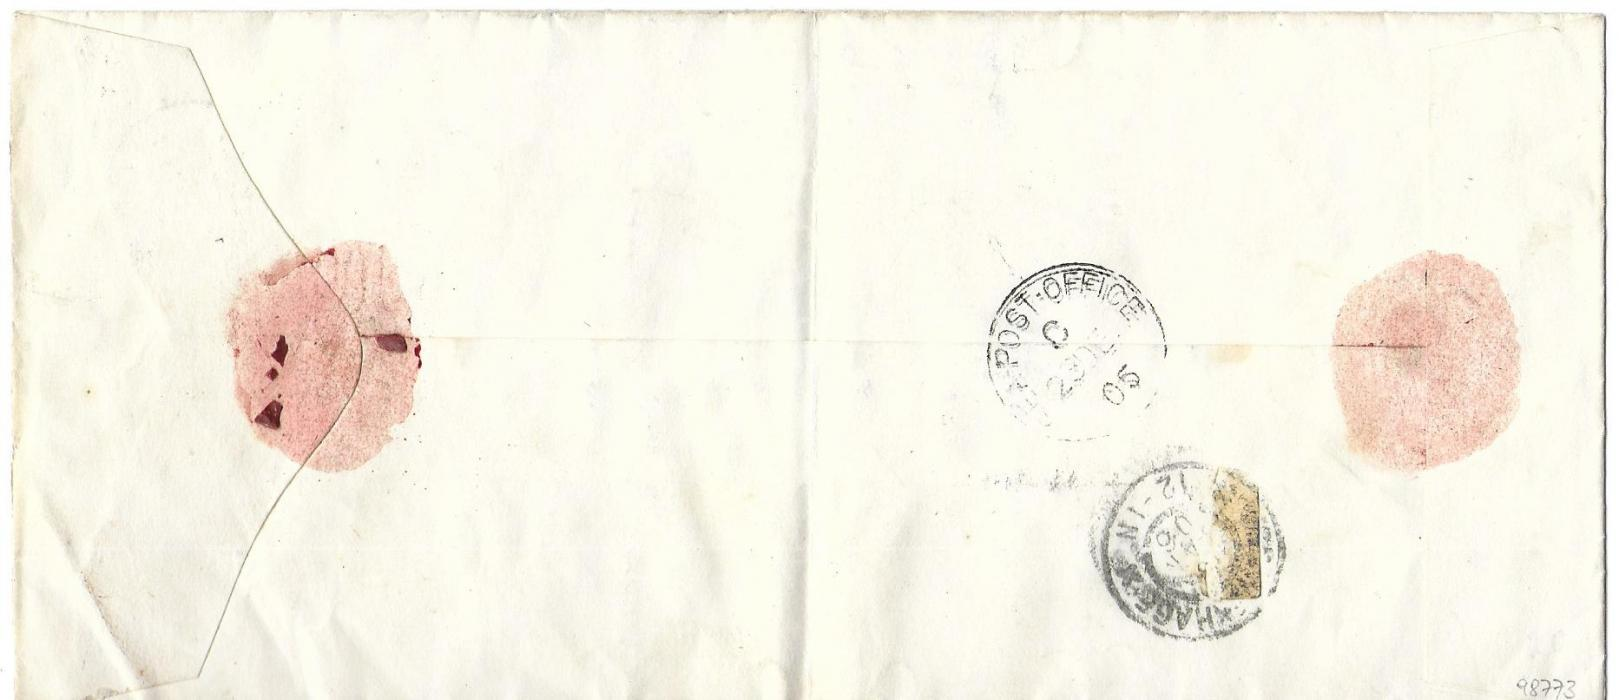 India (Used Abroad) 1905 long registered cover to Holland,franked 2a. and pir 2 1/2a. tied Bushire cds, framed registration at left, Sea Post Office C cds and arrival backstamp; central vertical filing crease.